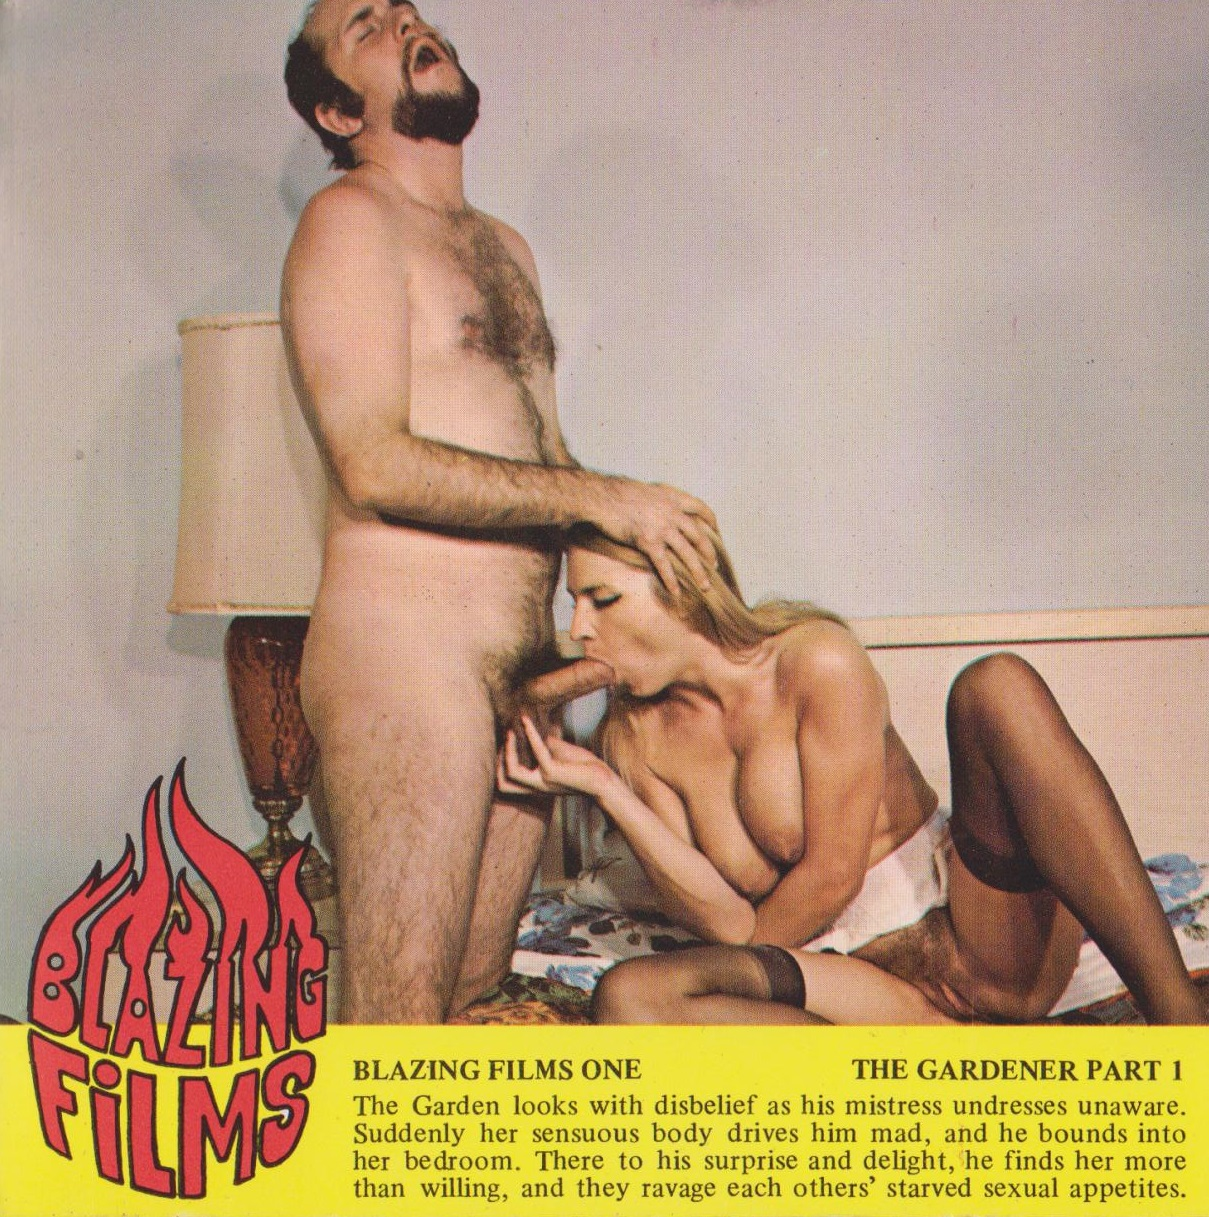 Blazing Film 1 - The Gardener Part 1